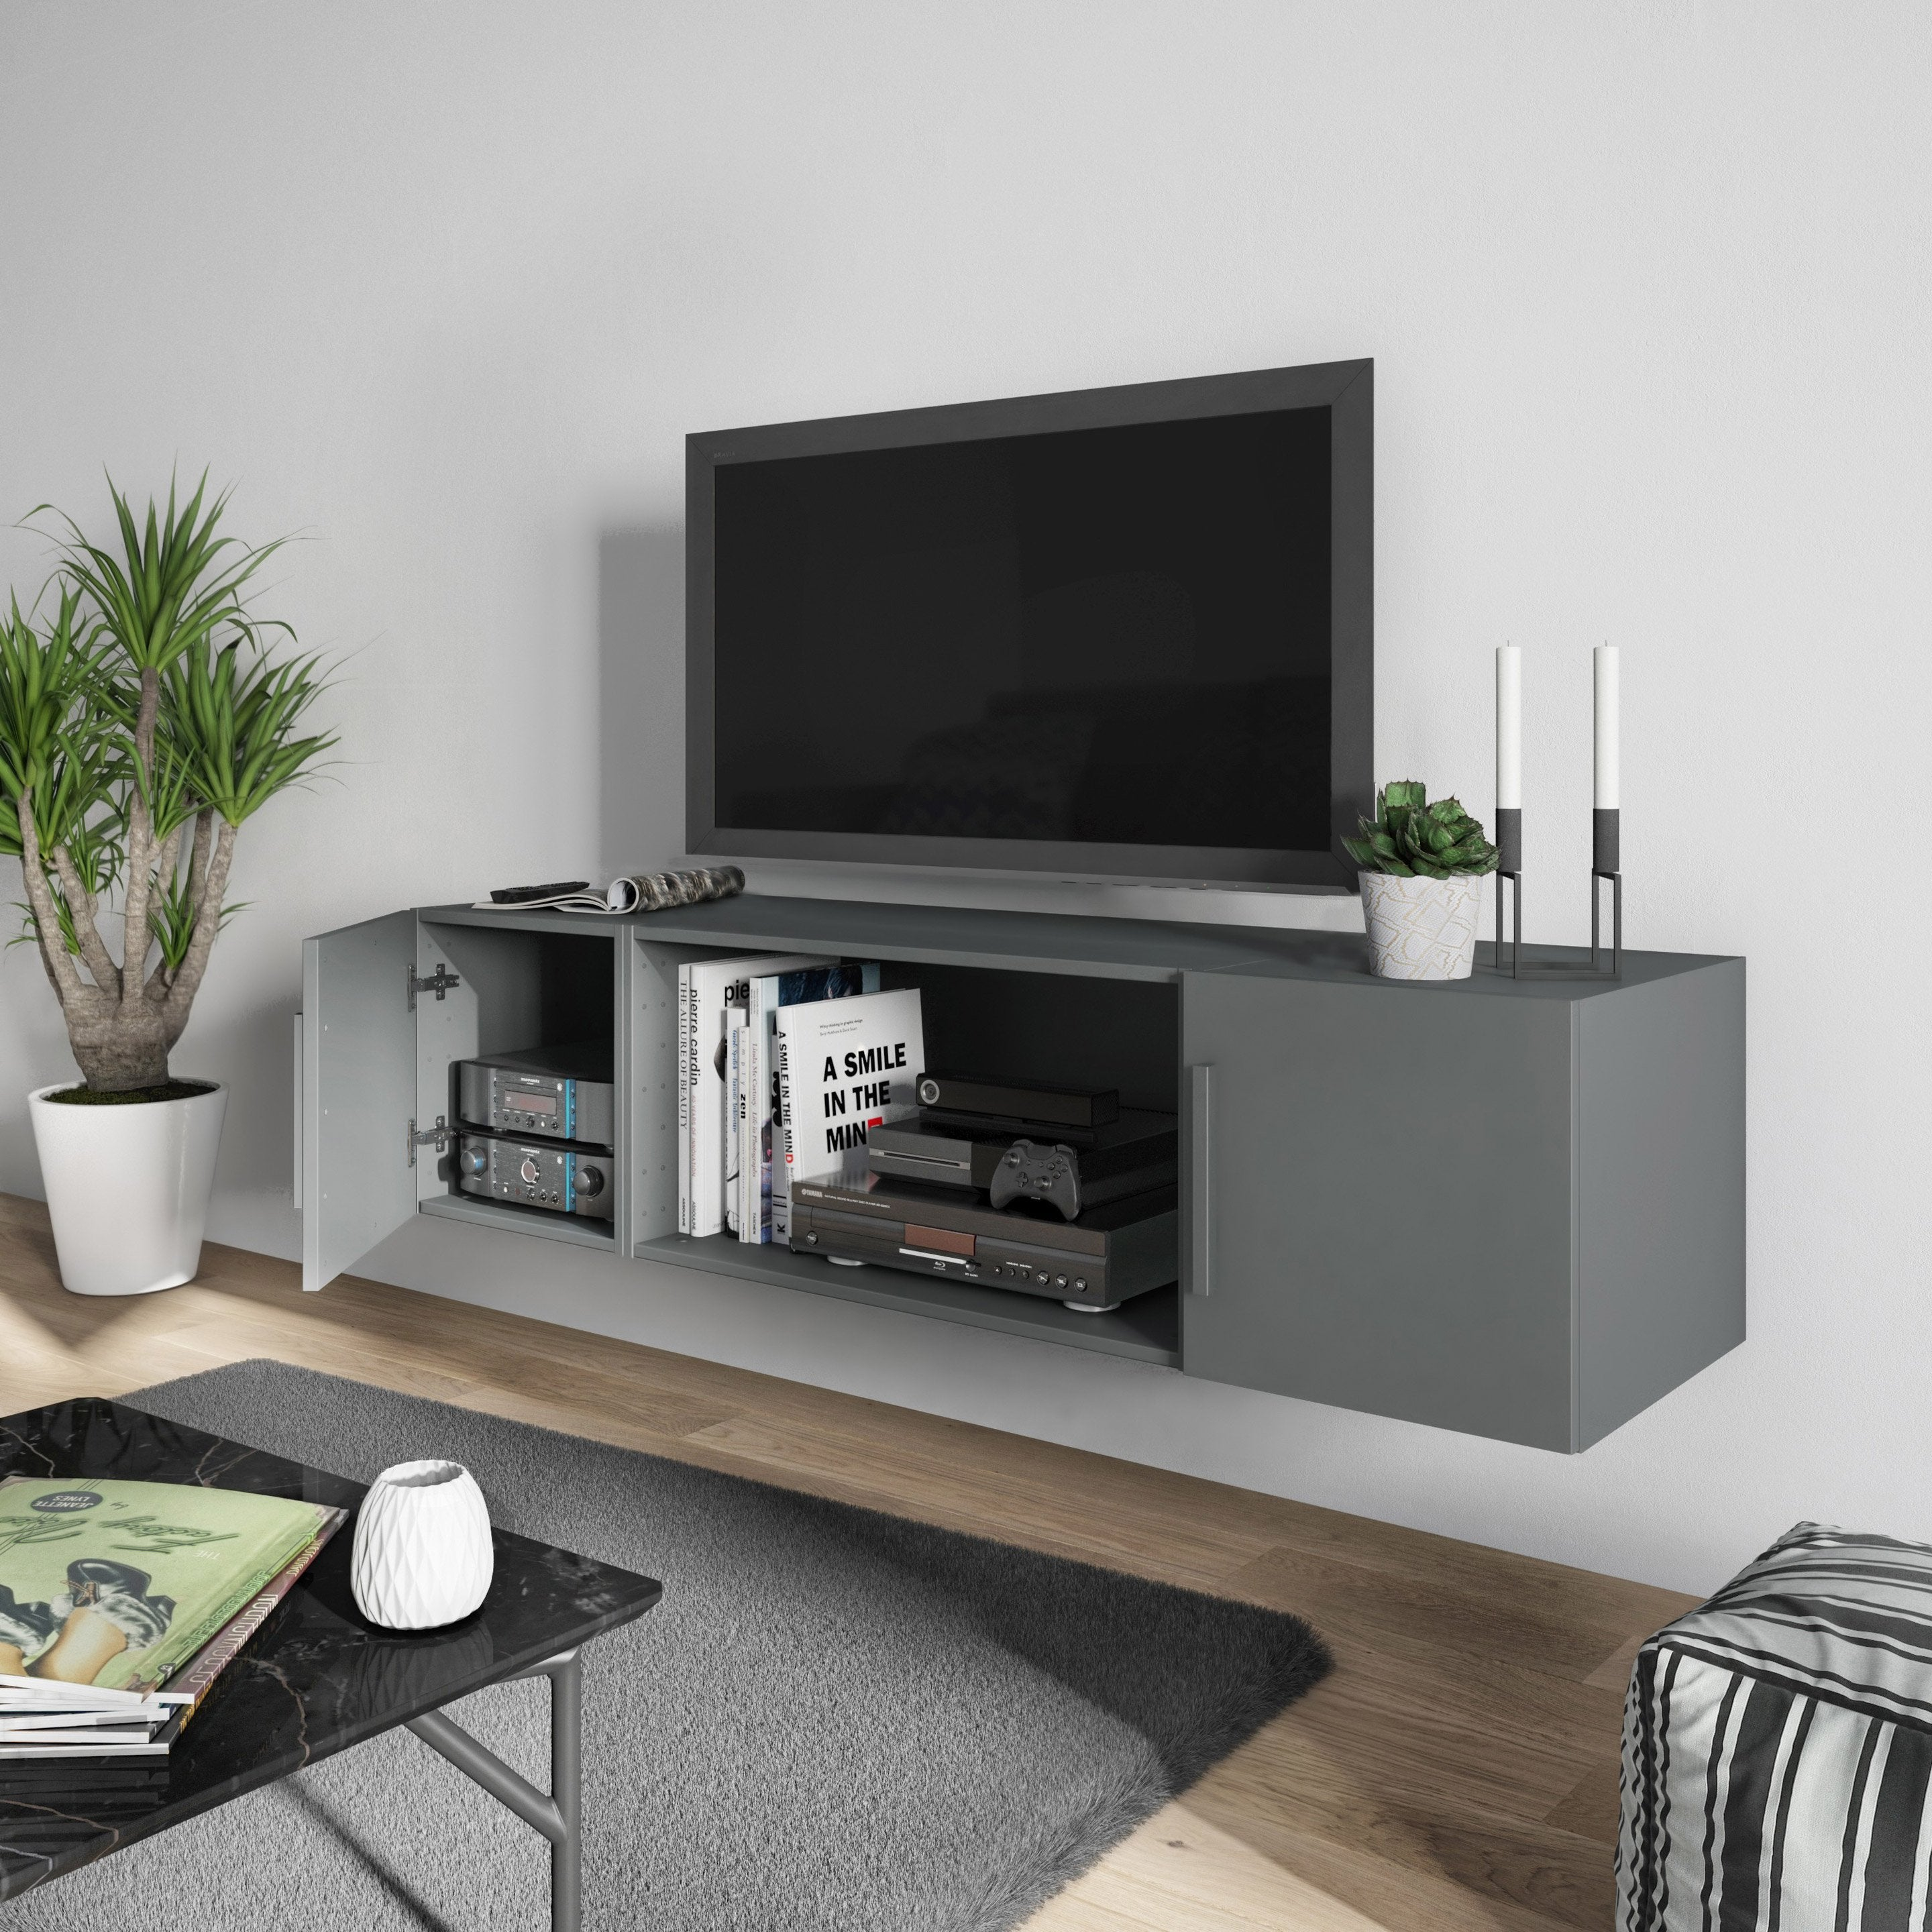 Meuble Tv À Faire Soi Meme meuble tv spaceo home, gris h.40 x l.160 x p.45 cm